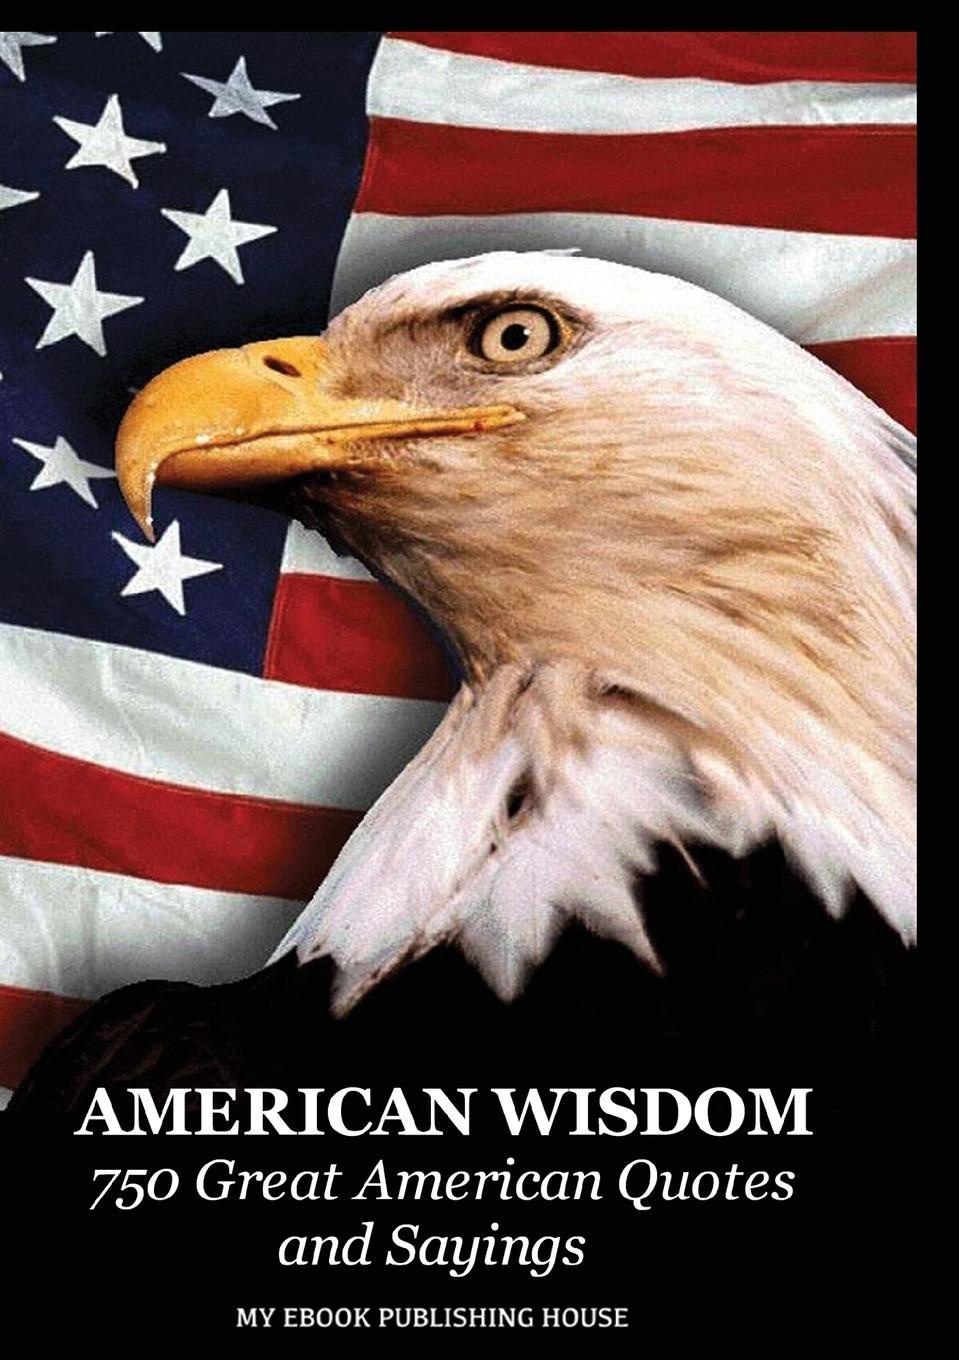 Publishing House My Ebook American Wisdom - 750 Great American Quotes and Sayings henry g bohn a dictionary of quotations from english and american poets based upon bohn s edition revised corrected and enlarged twelve hundred quotations added from american authors